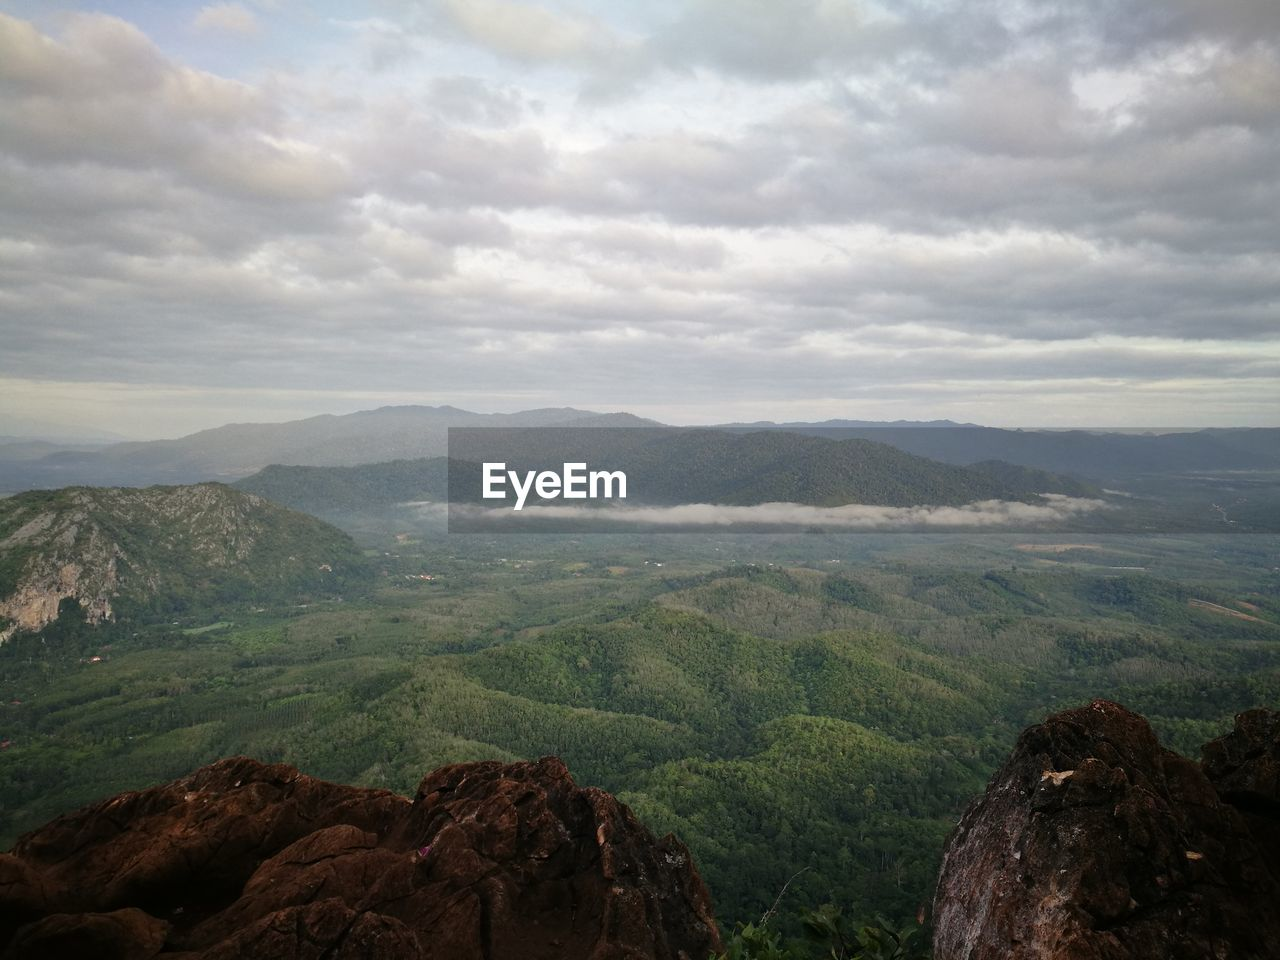 SCENIC VIEW OF MOUNTAIN RANGE AND CLOUDY SKY